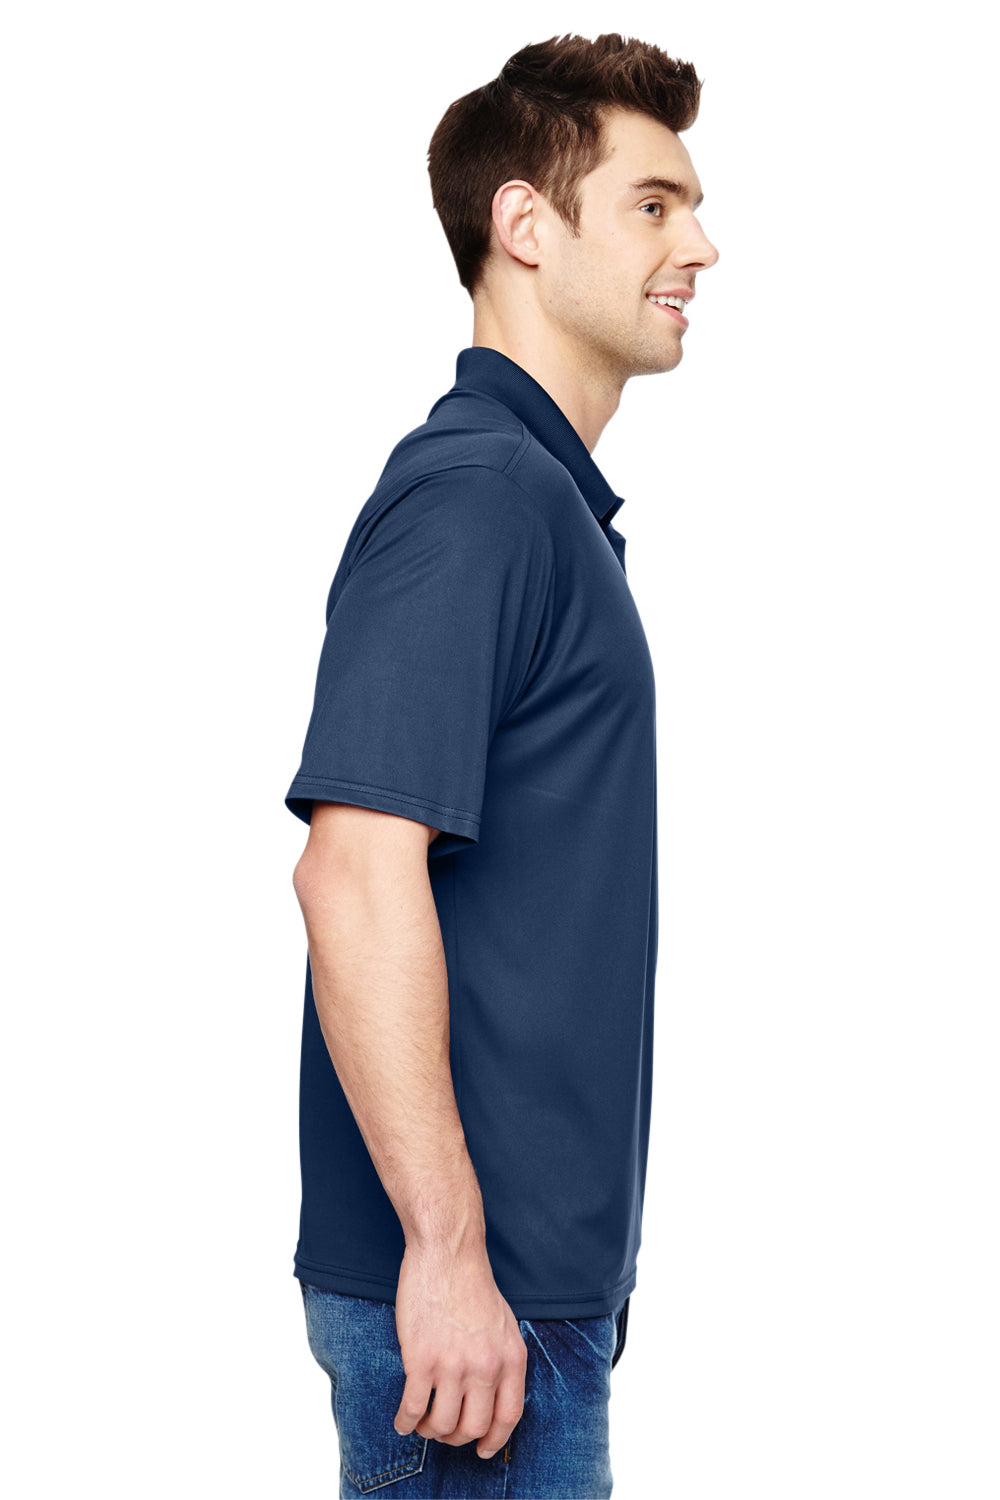 Hanes 4800 Mens Cool Dri Fresh IQ Moisture Wicking Short Sleeve Polo Shirt Navy Blue Side